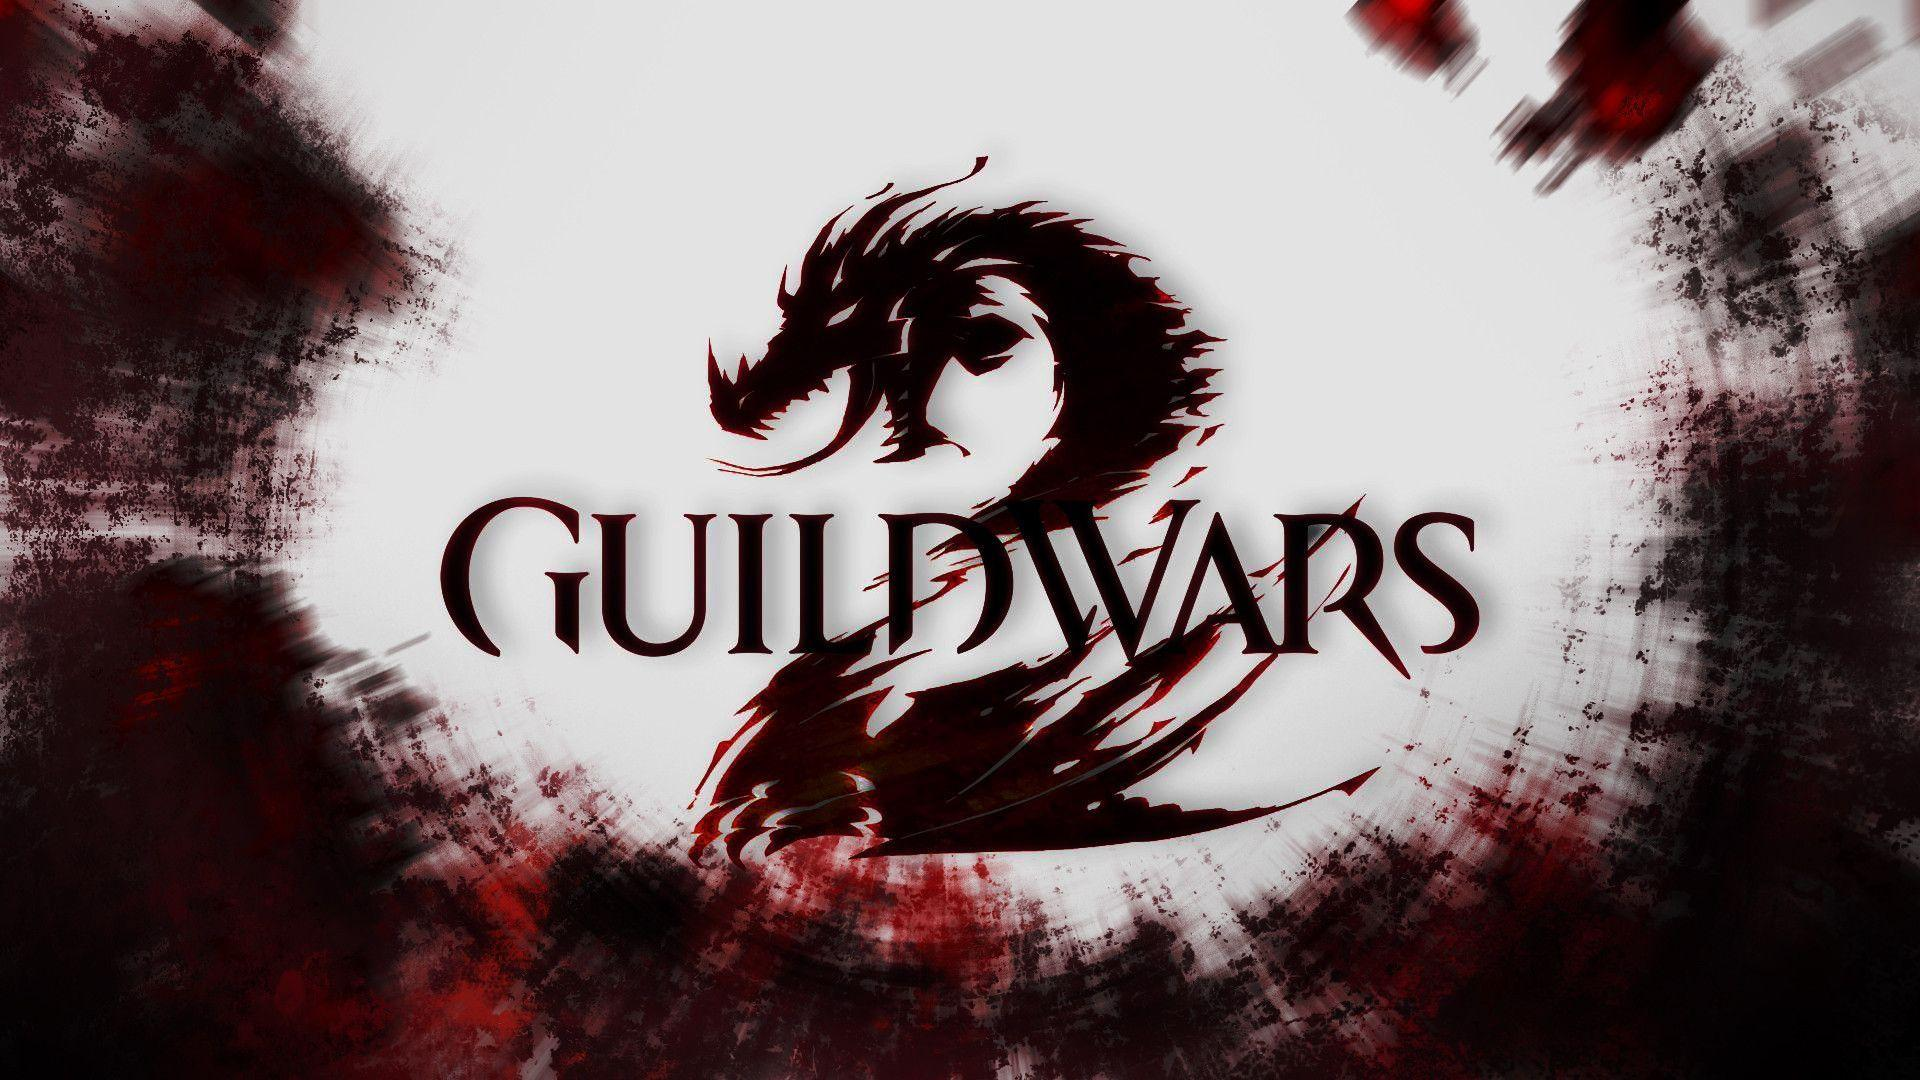 Hd Guild Wars 2 Wallpapers Wallpaper Cave